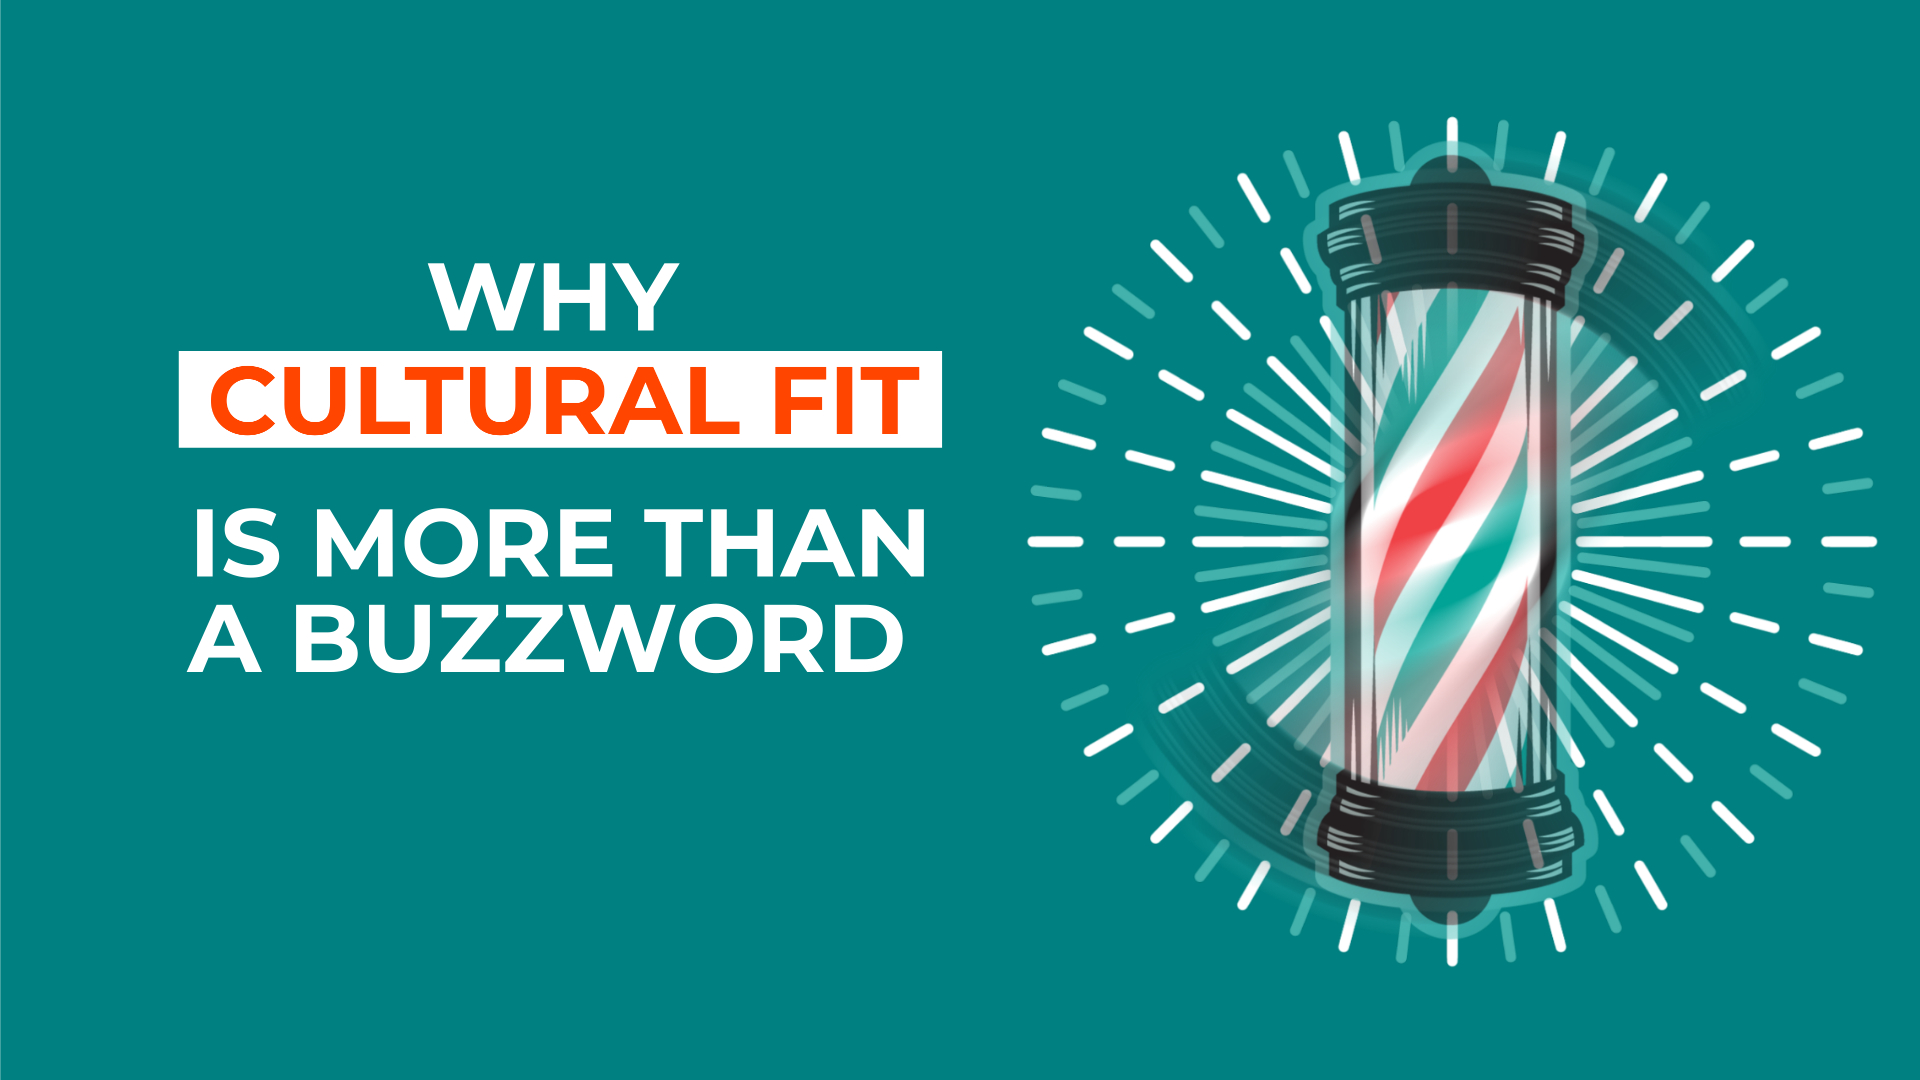 Why Cultural Fit is more than a Buzzword